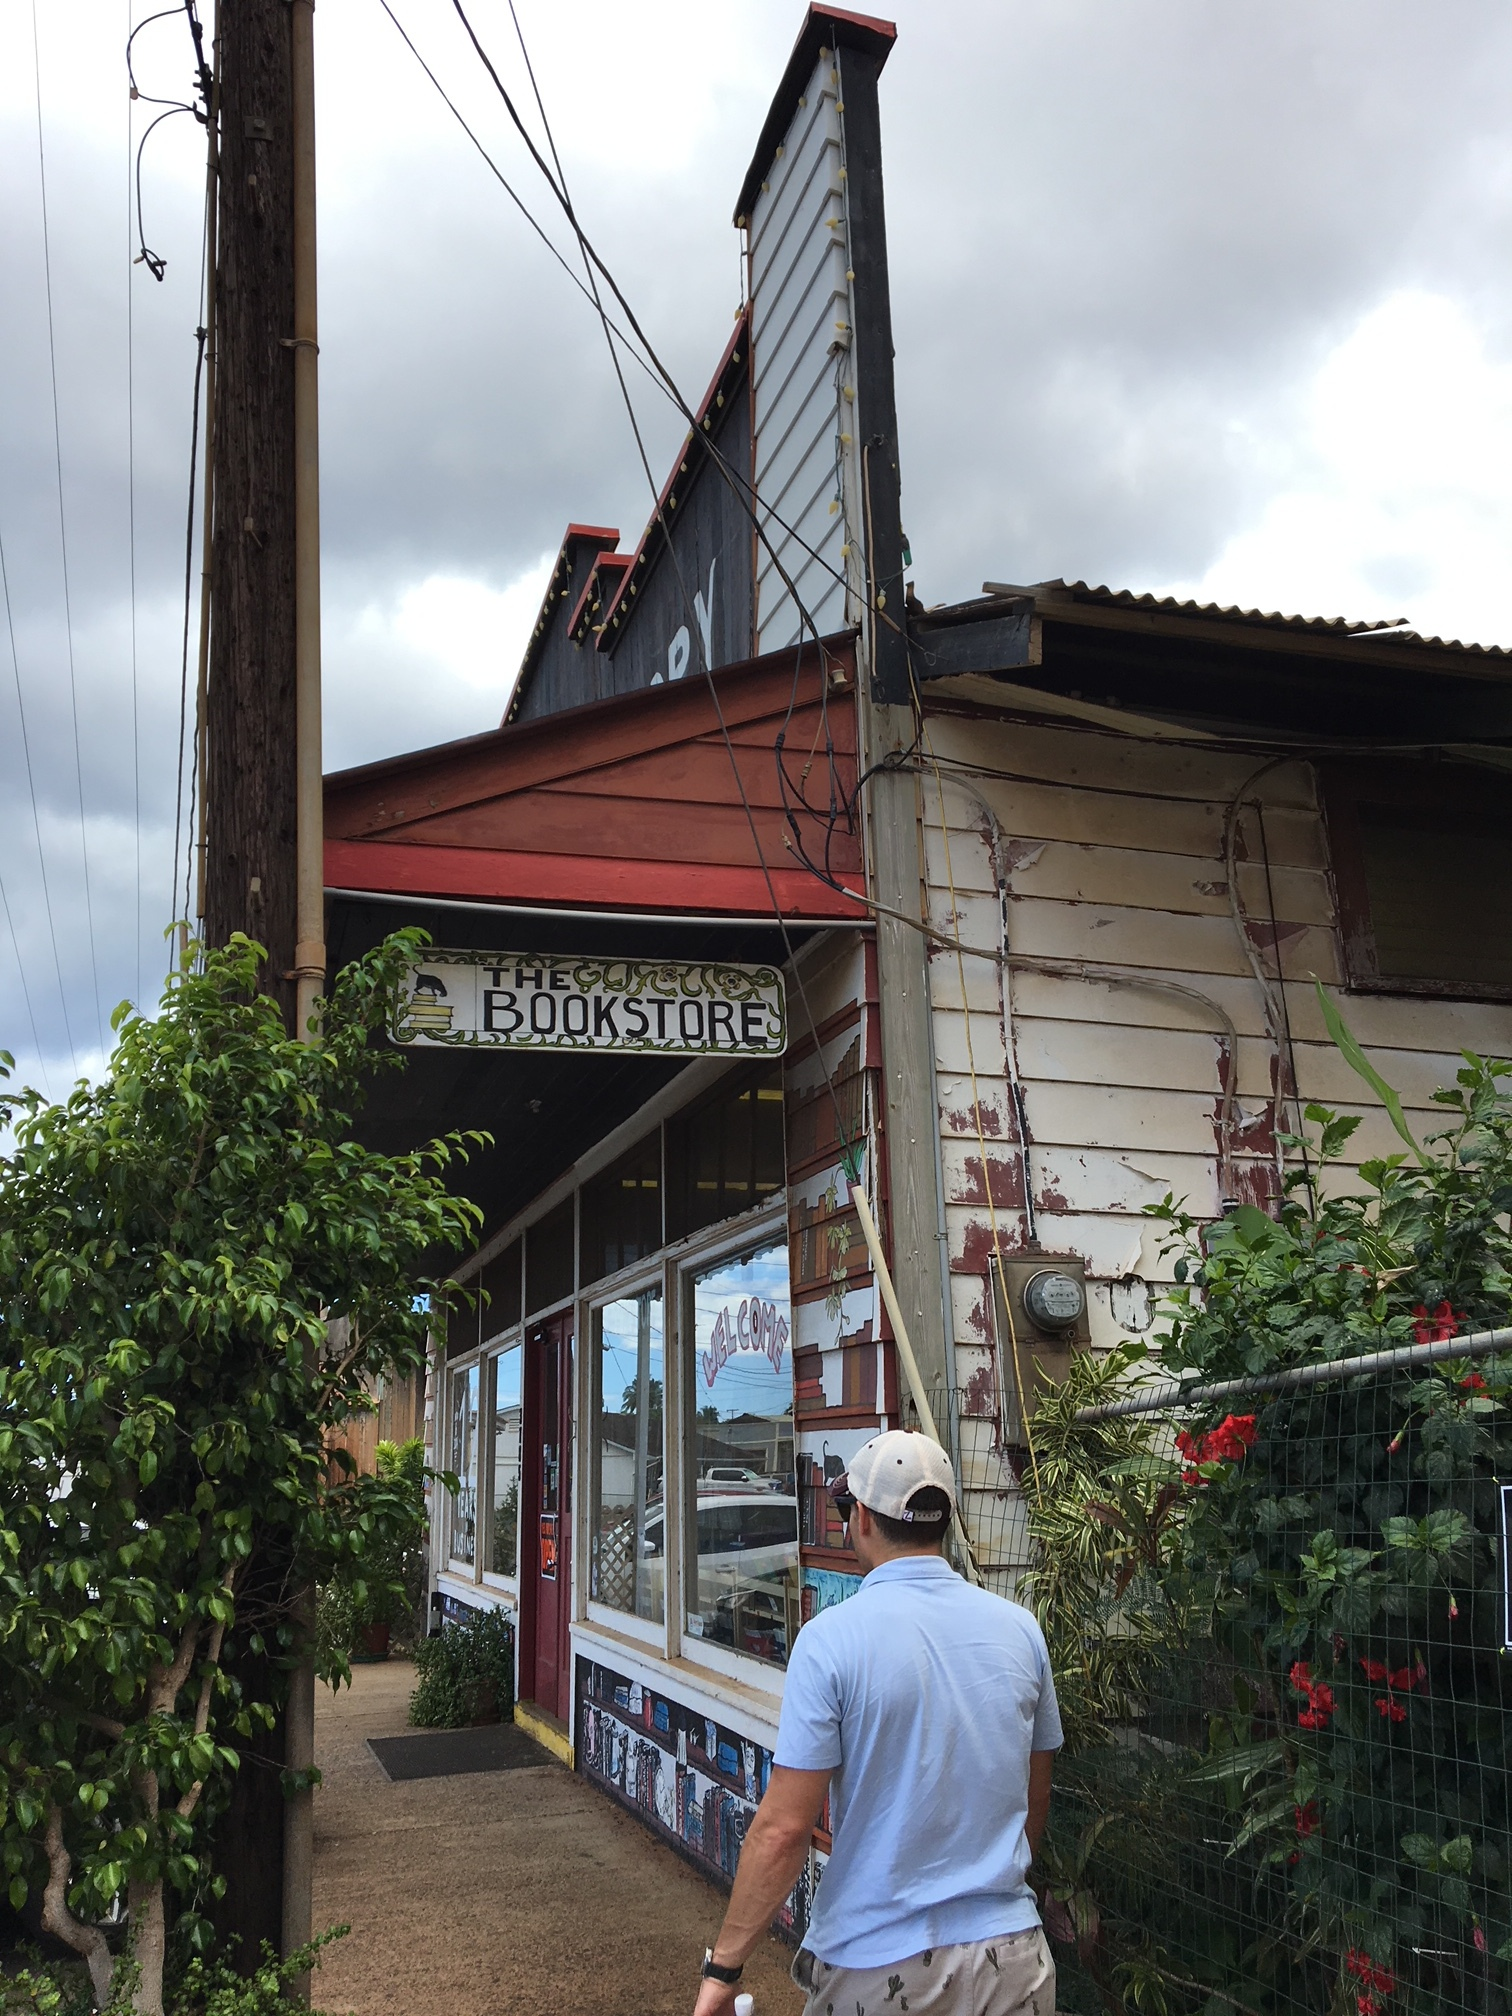 Another perfect little bookstore on Kauai - the furthest west bookstore in the US! They had an adorable kitty, too